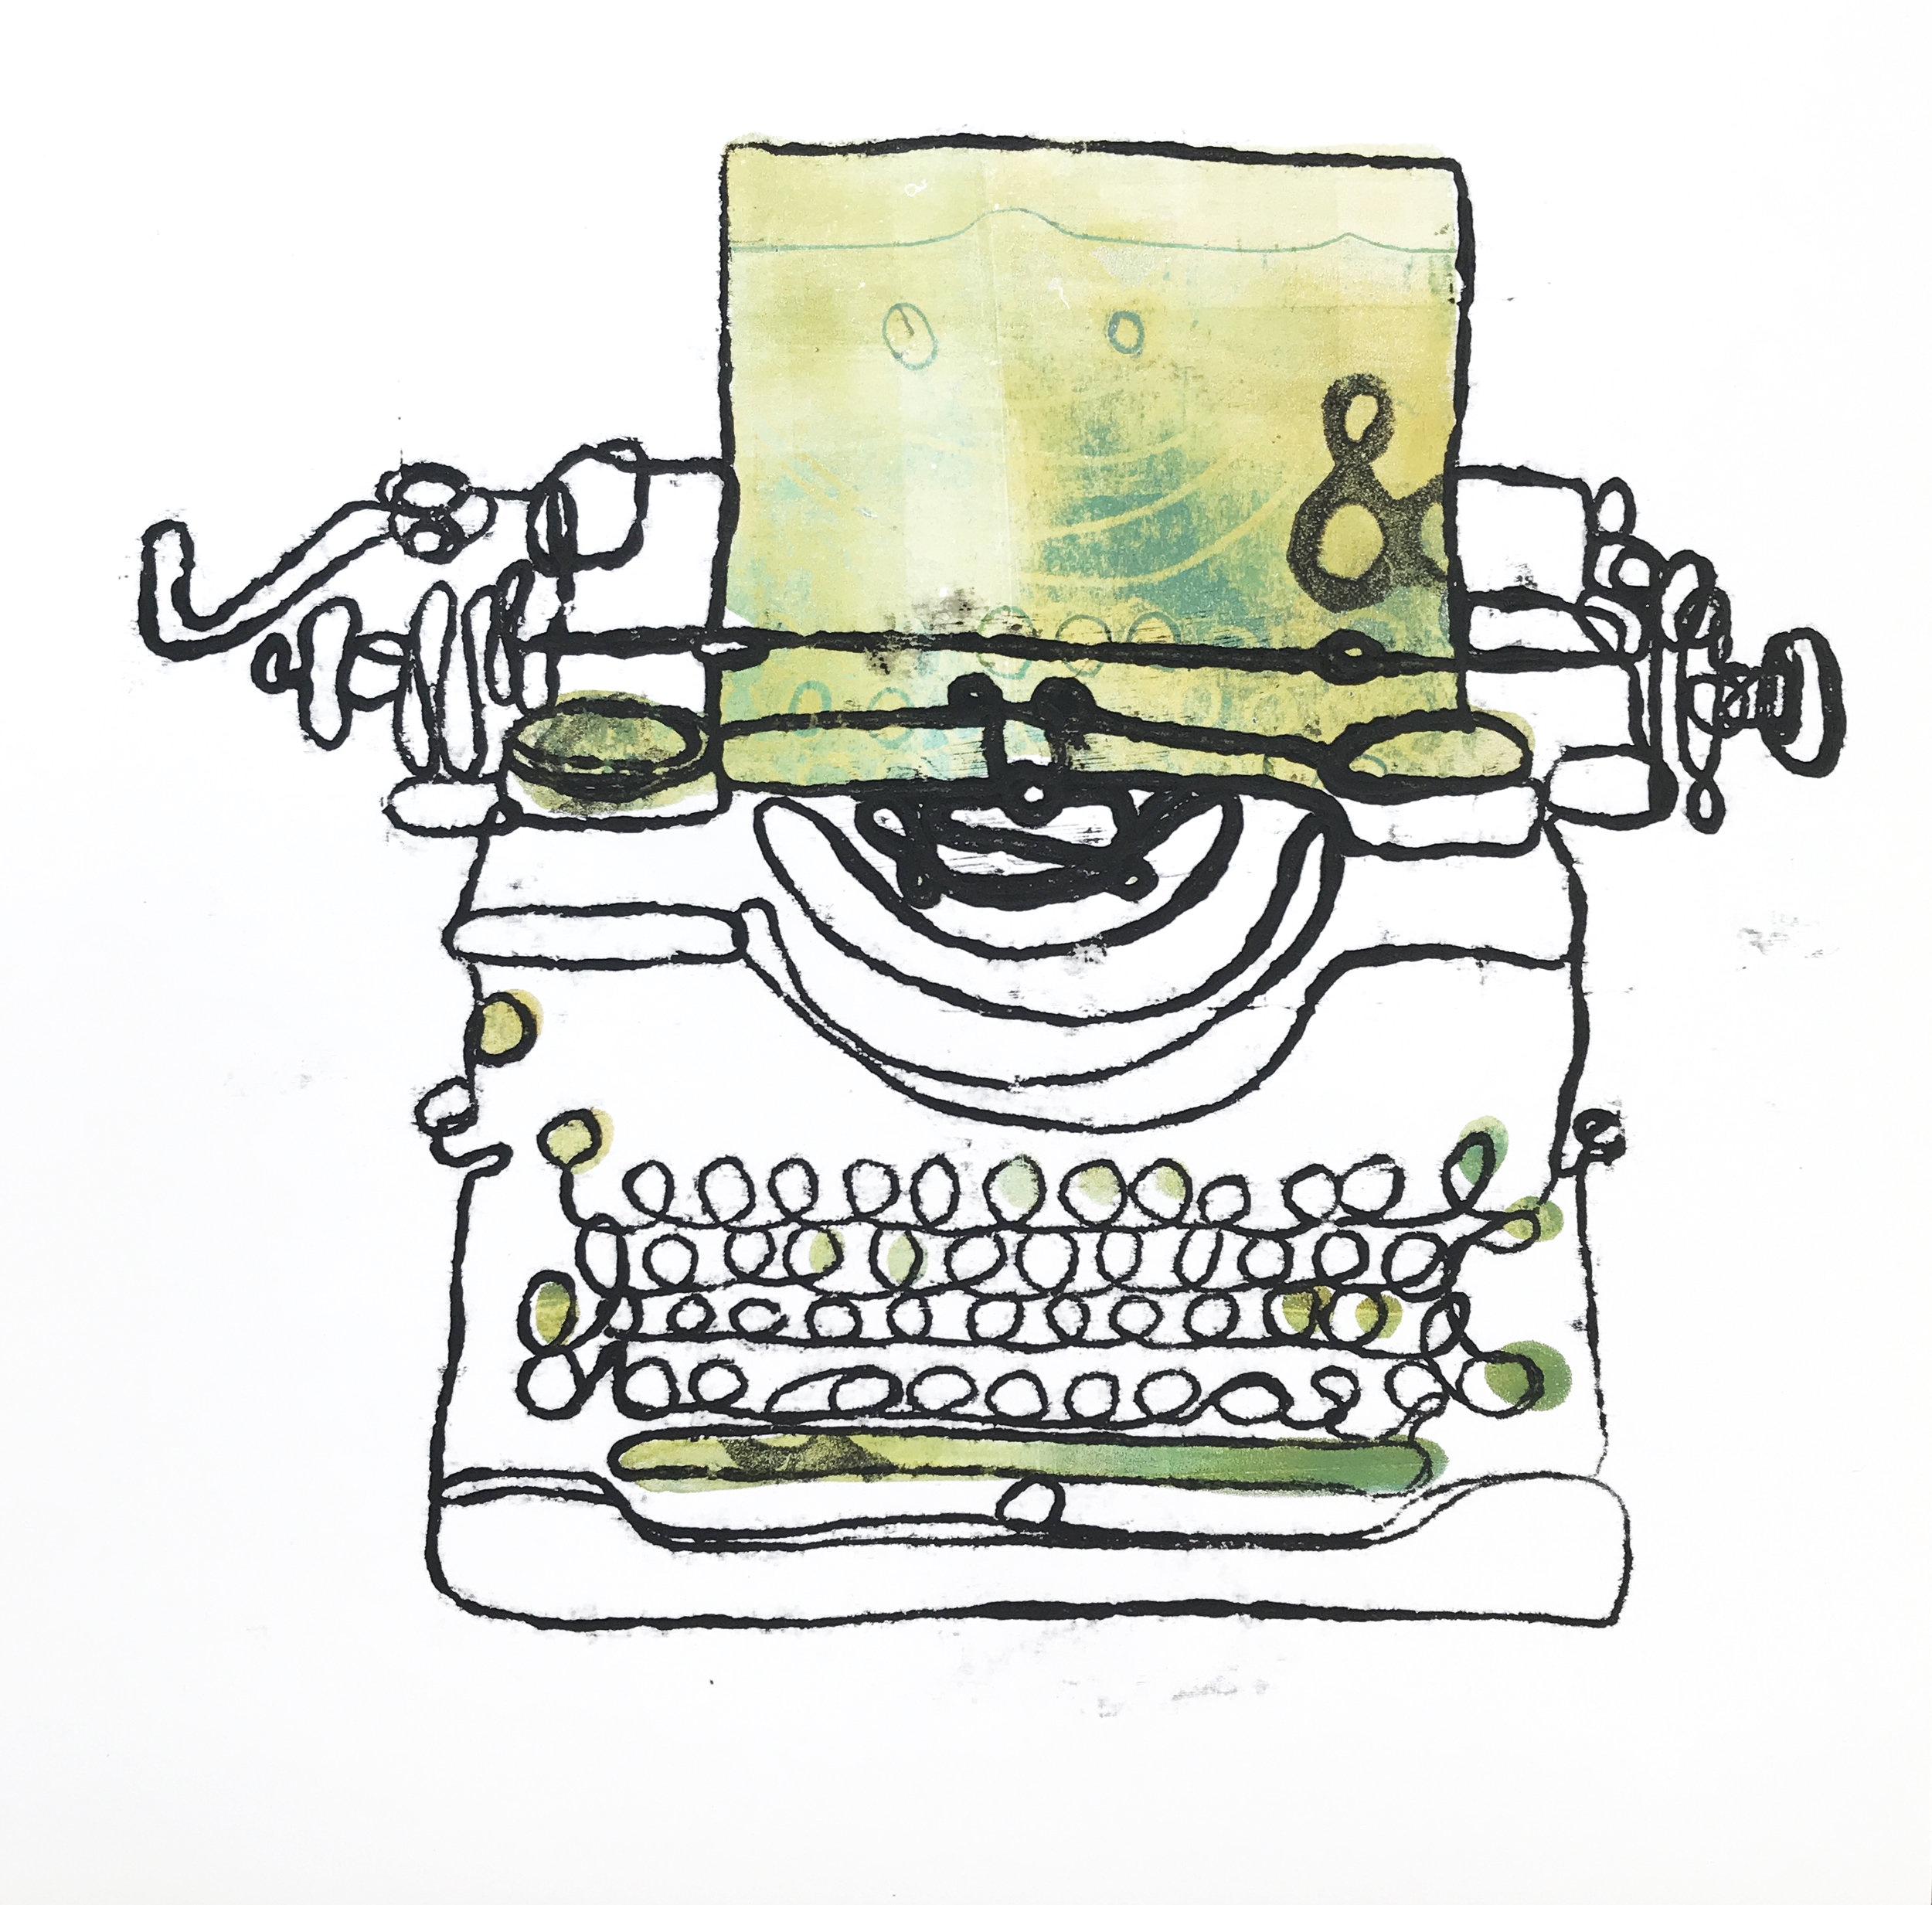 Typewriter Monoprint (number 2) & what happens next in your story?